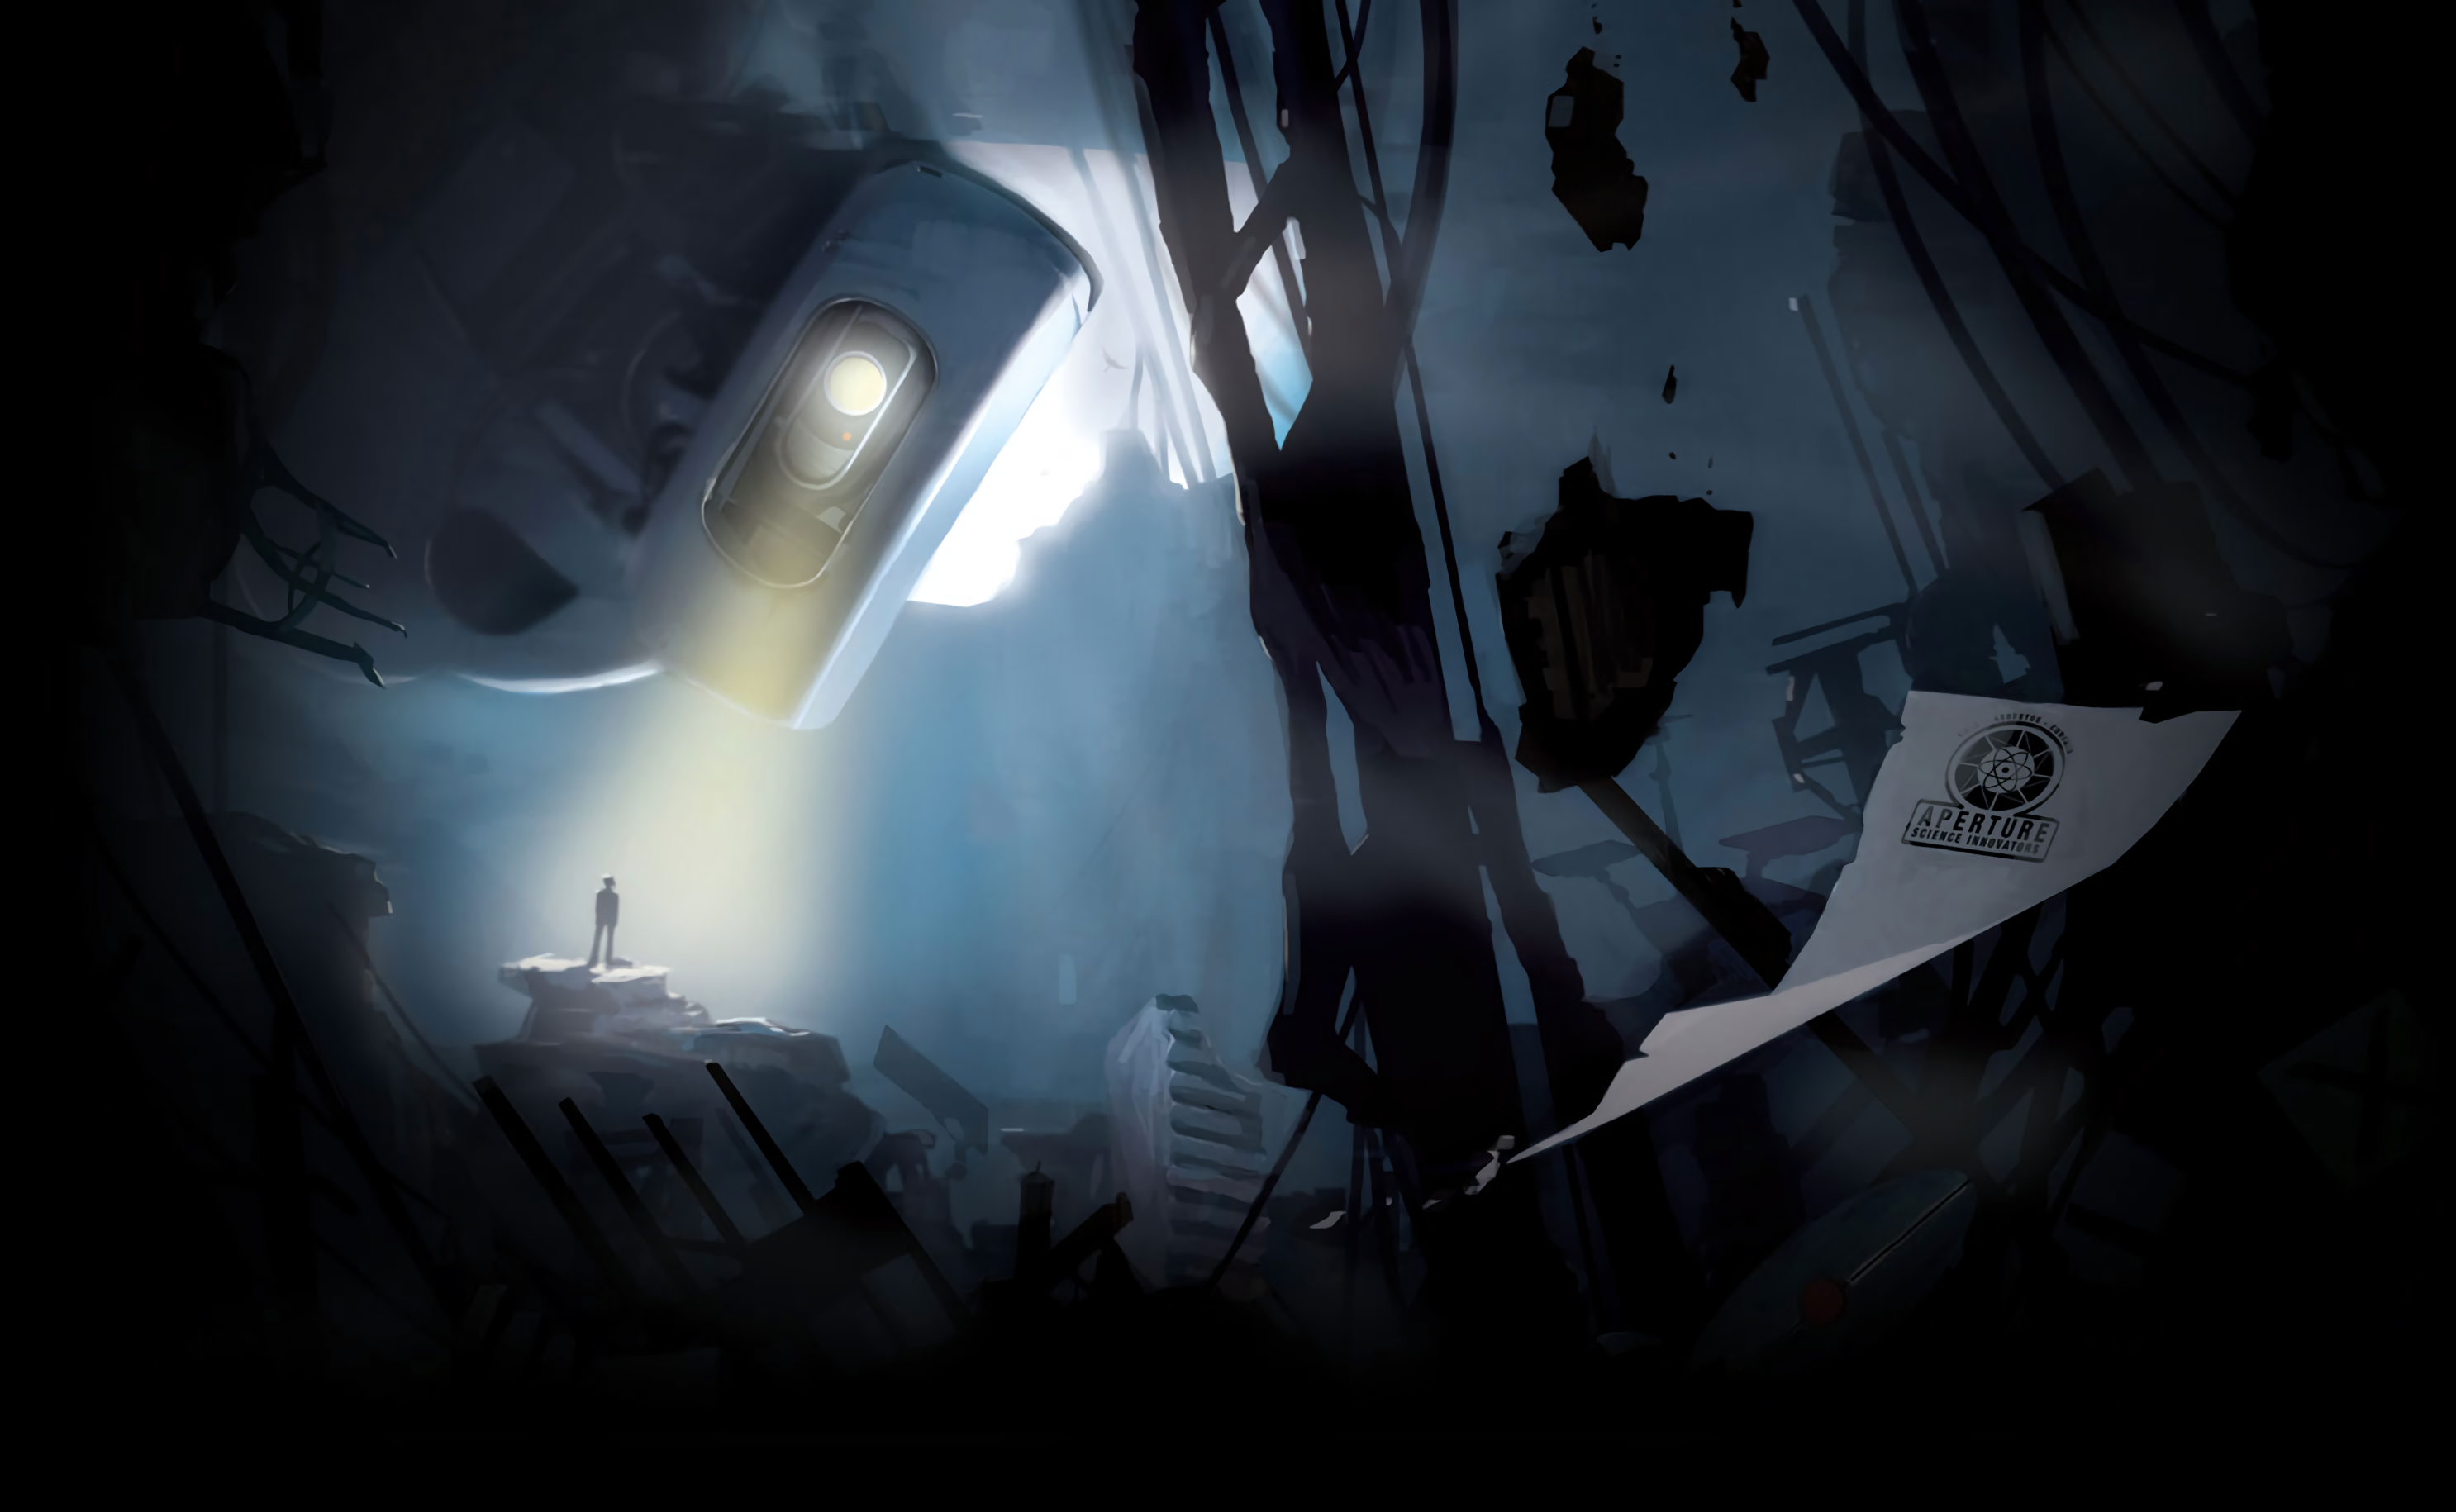 Portal 2 glados full hd wallpaper and background image 2972x1830 video game portal 2 glados portal wallpaper voltagebd Images